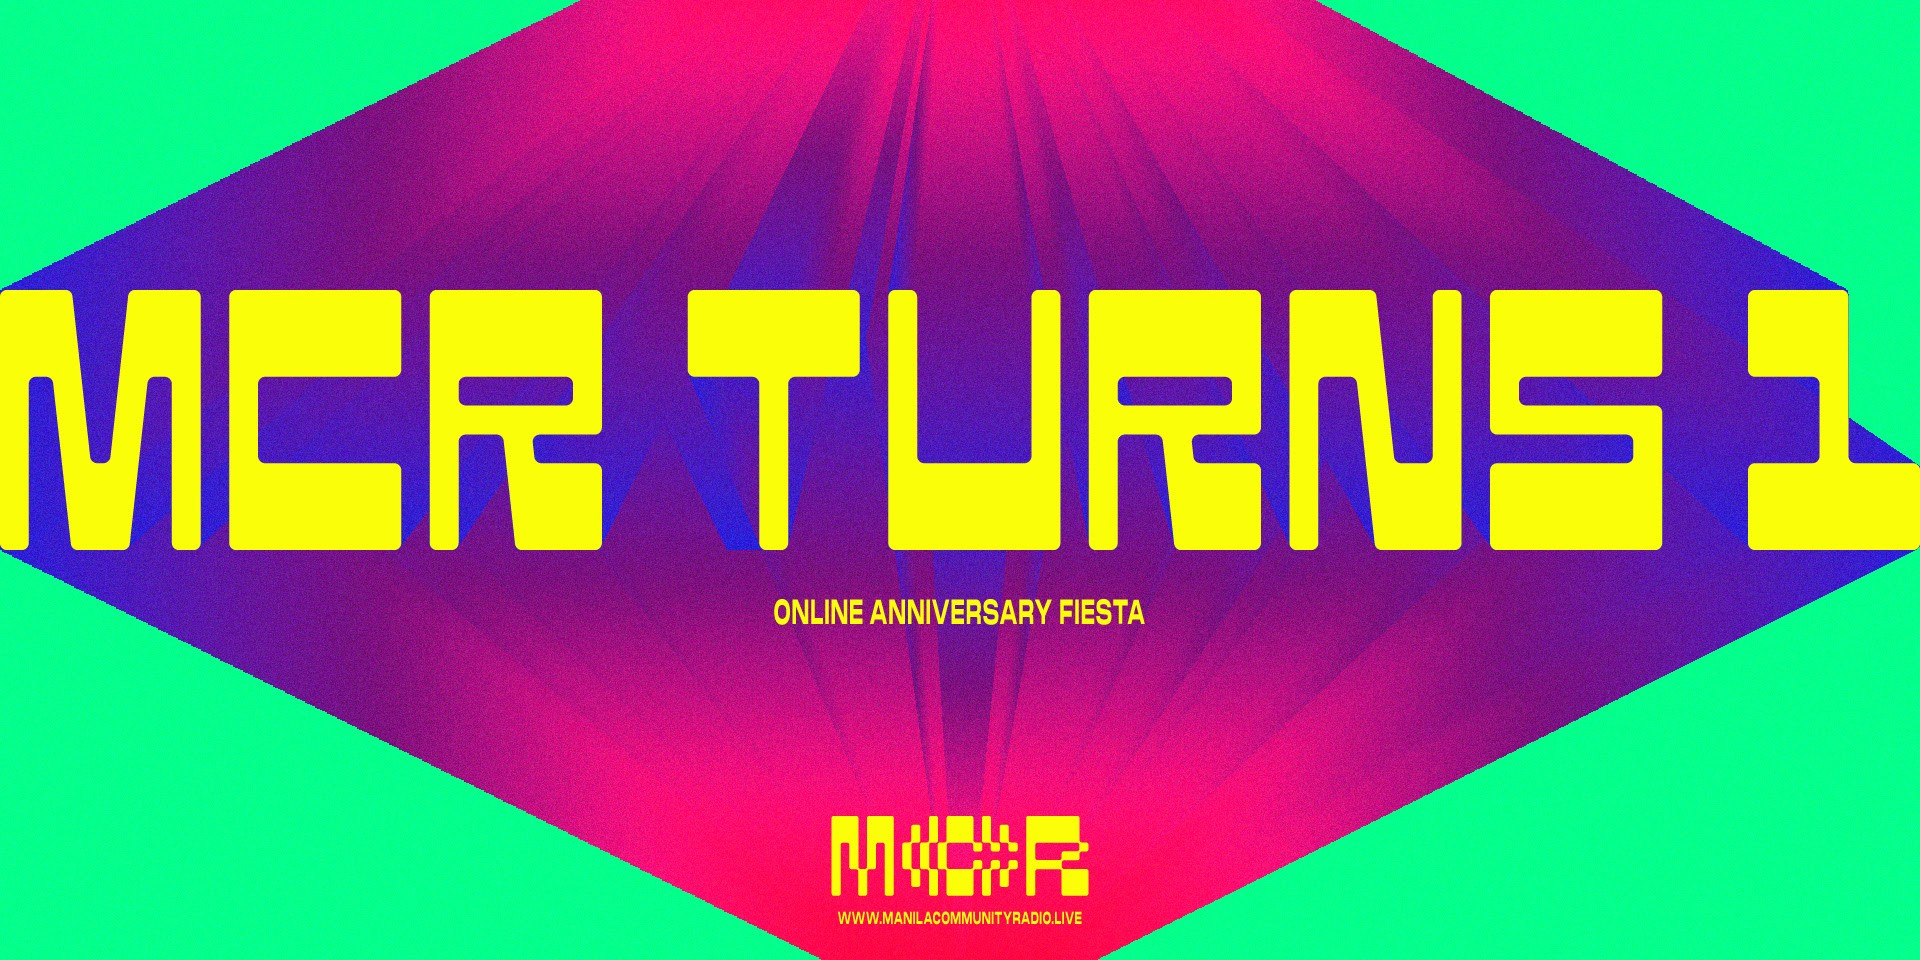 Manila Community Radio celebrates its first anniversary with online 'fiesta' featuring BuwanBuwan Collective, UNKNWN, Raymund Marasigan, and more